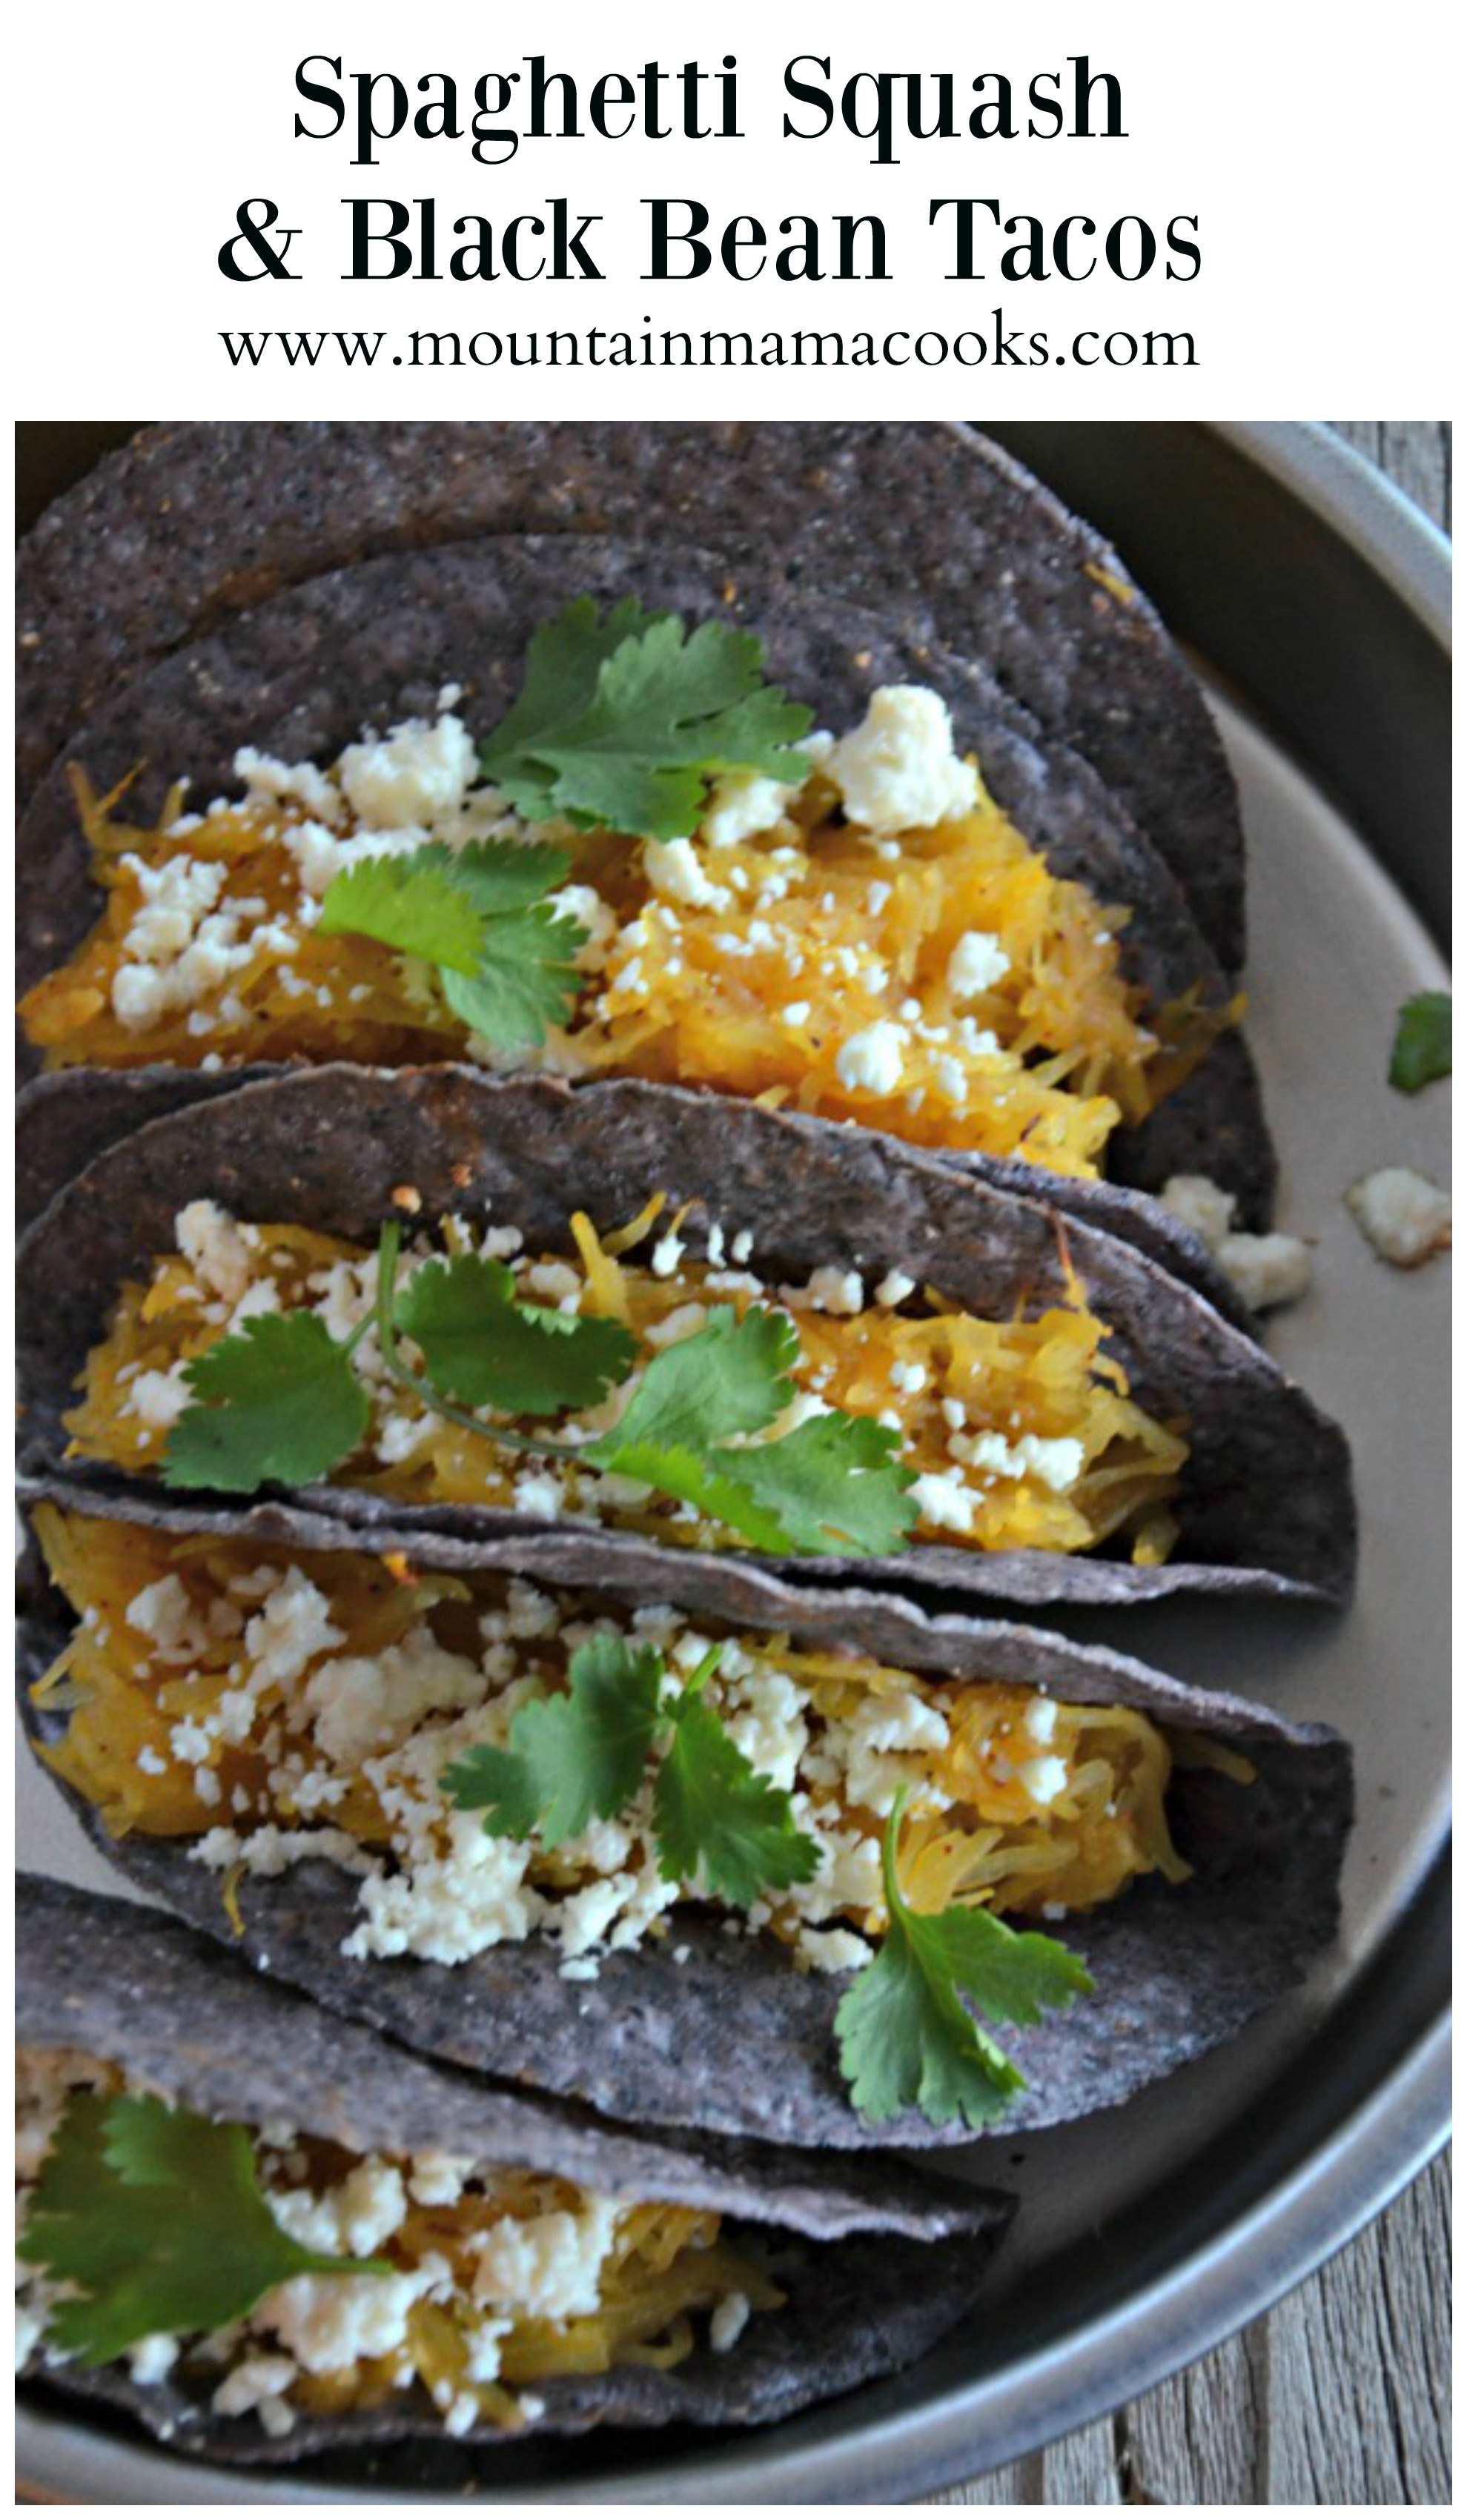 Spaghetti Squash and Black Bean Tacos | mountainmamacooks.com